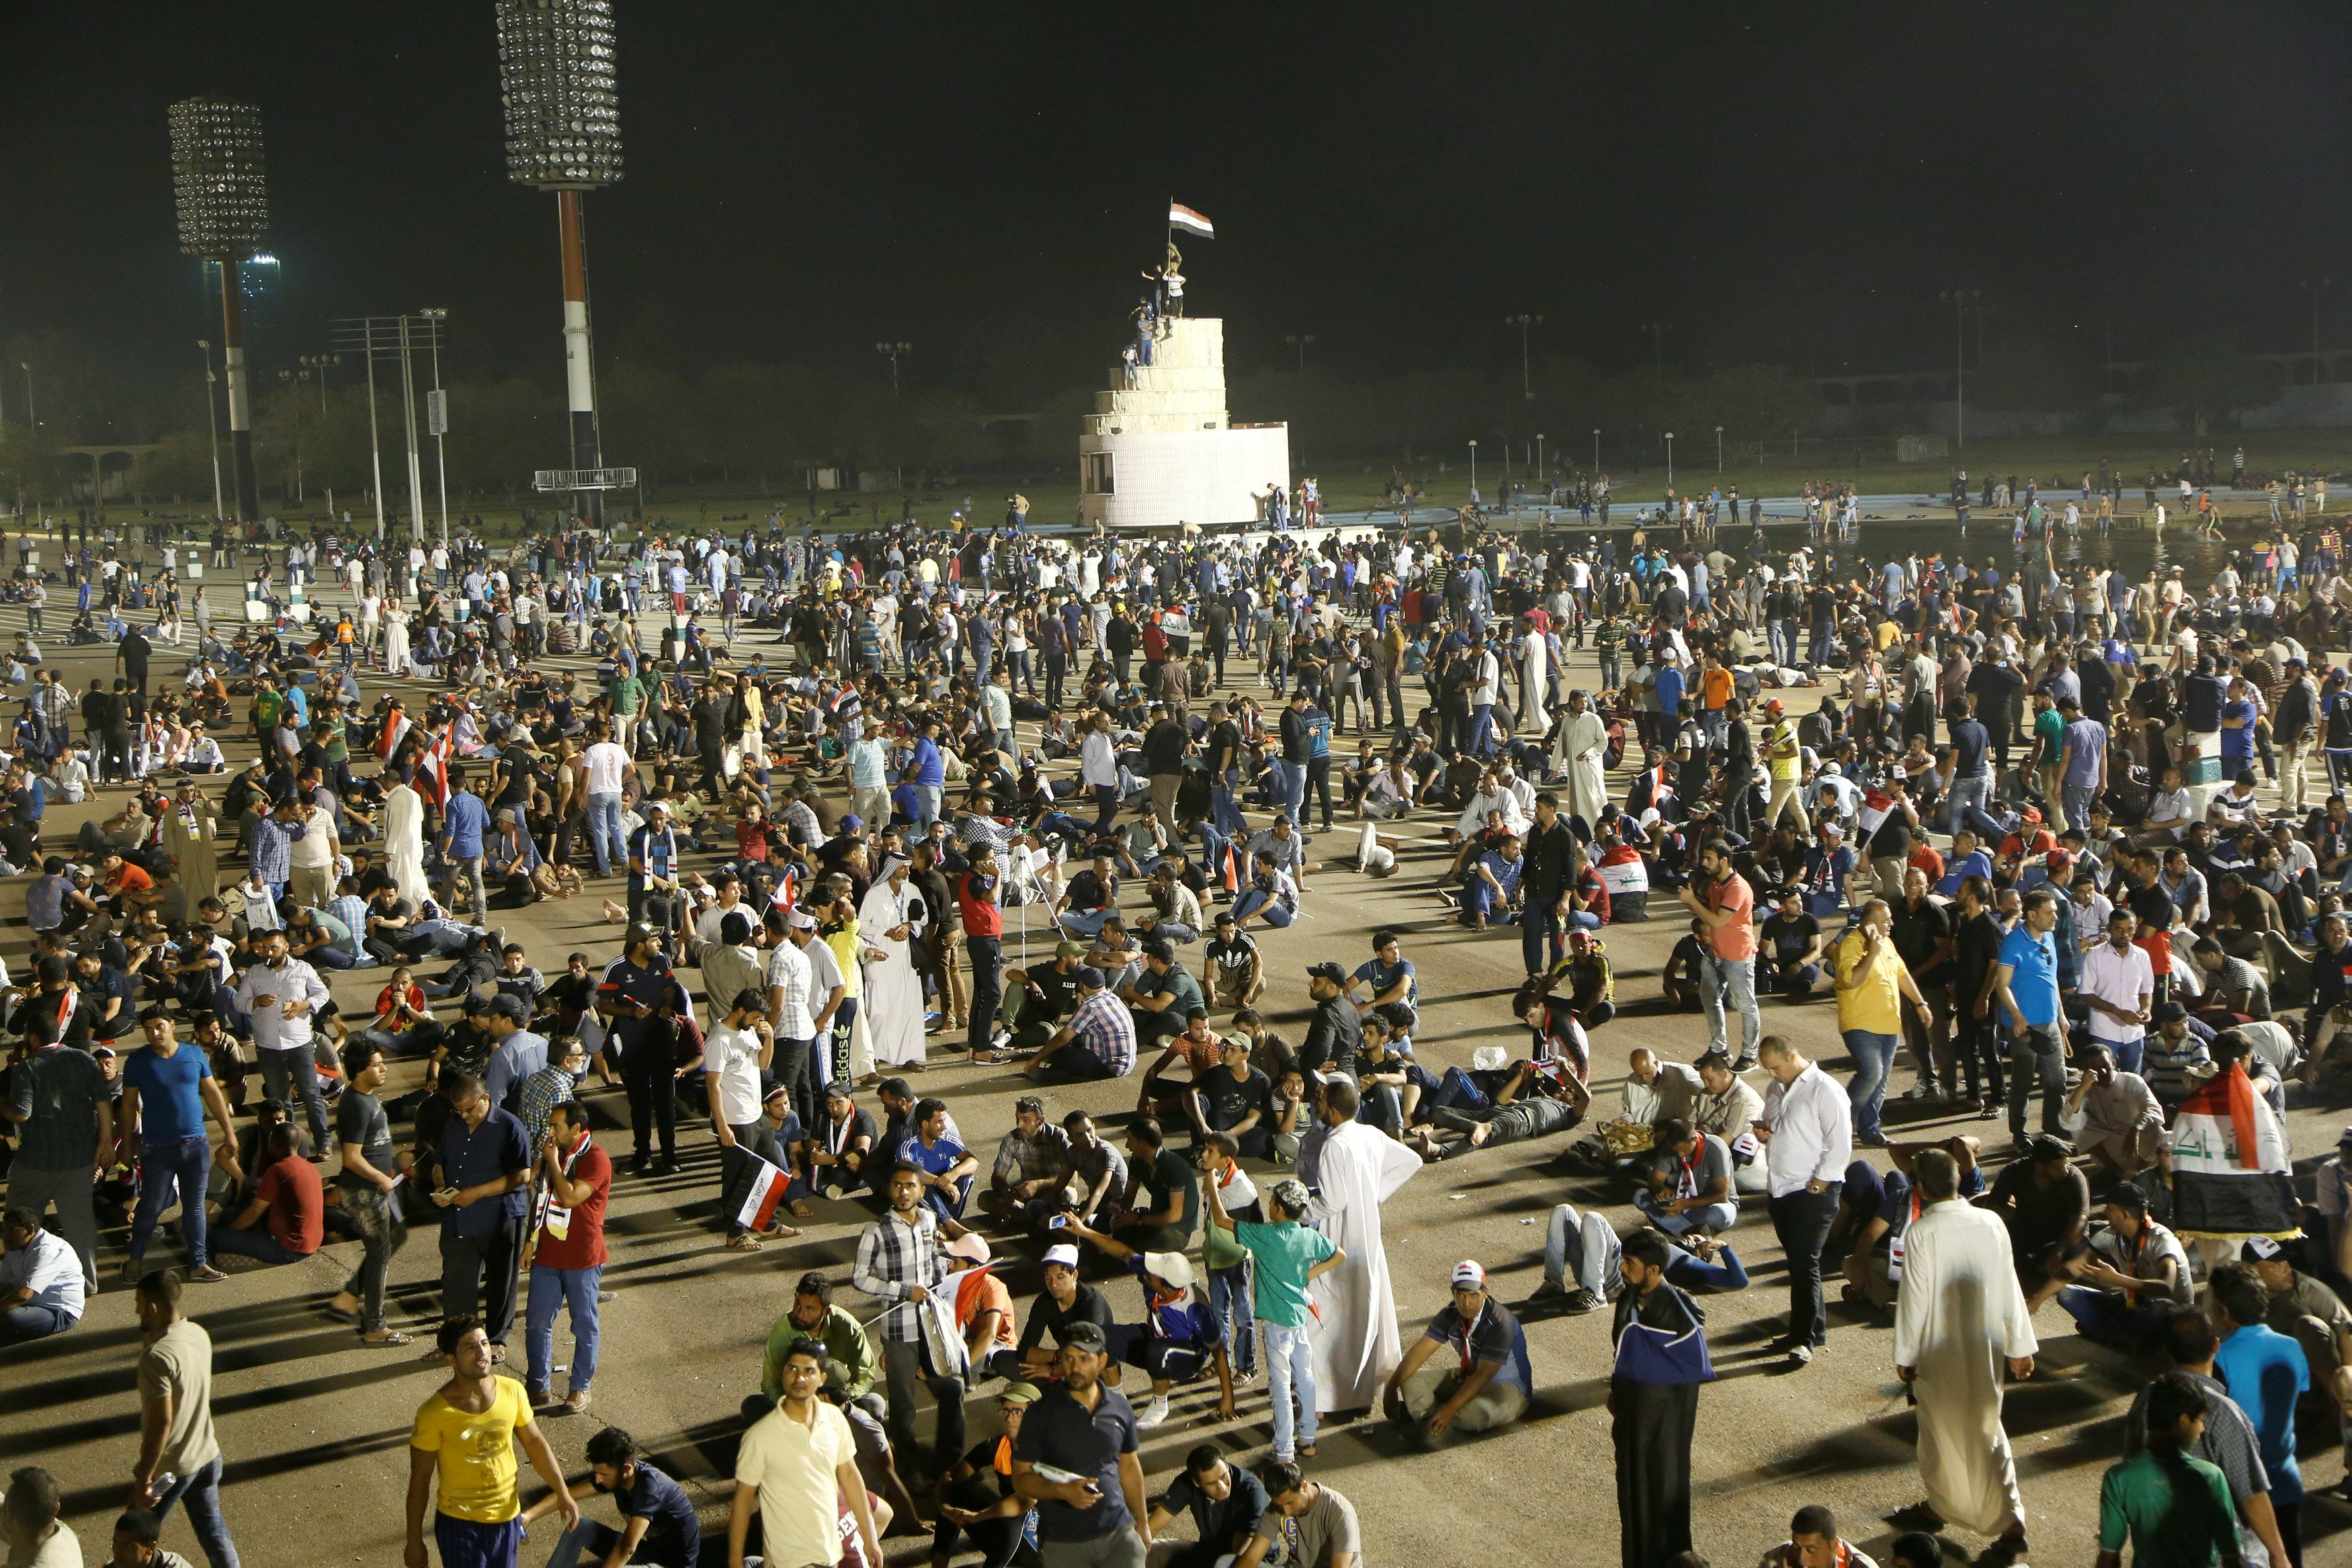 Followers of Iraq's Shi'ite cleric Moqtada al-Sadr hold a sit-in at Grand Festivities Square in Baghdad, in Iraq April 30, 2016. REUTERS/Wissm al-Okili